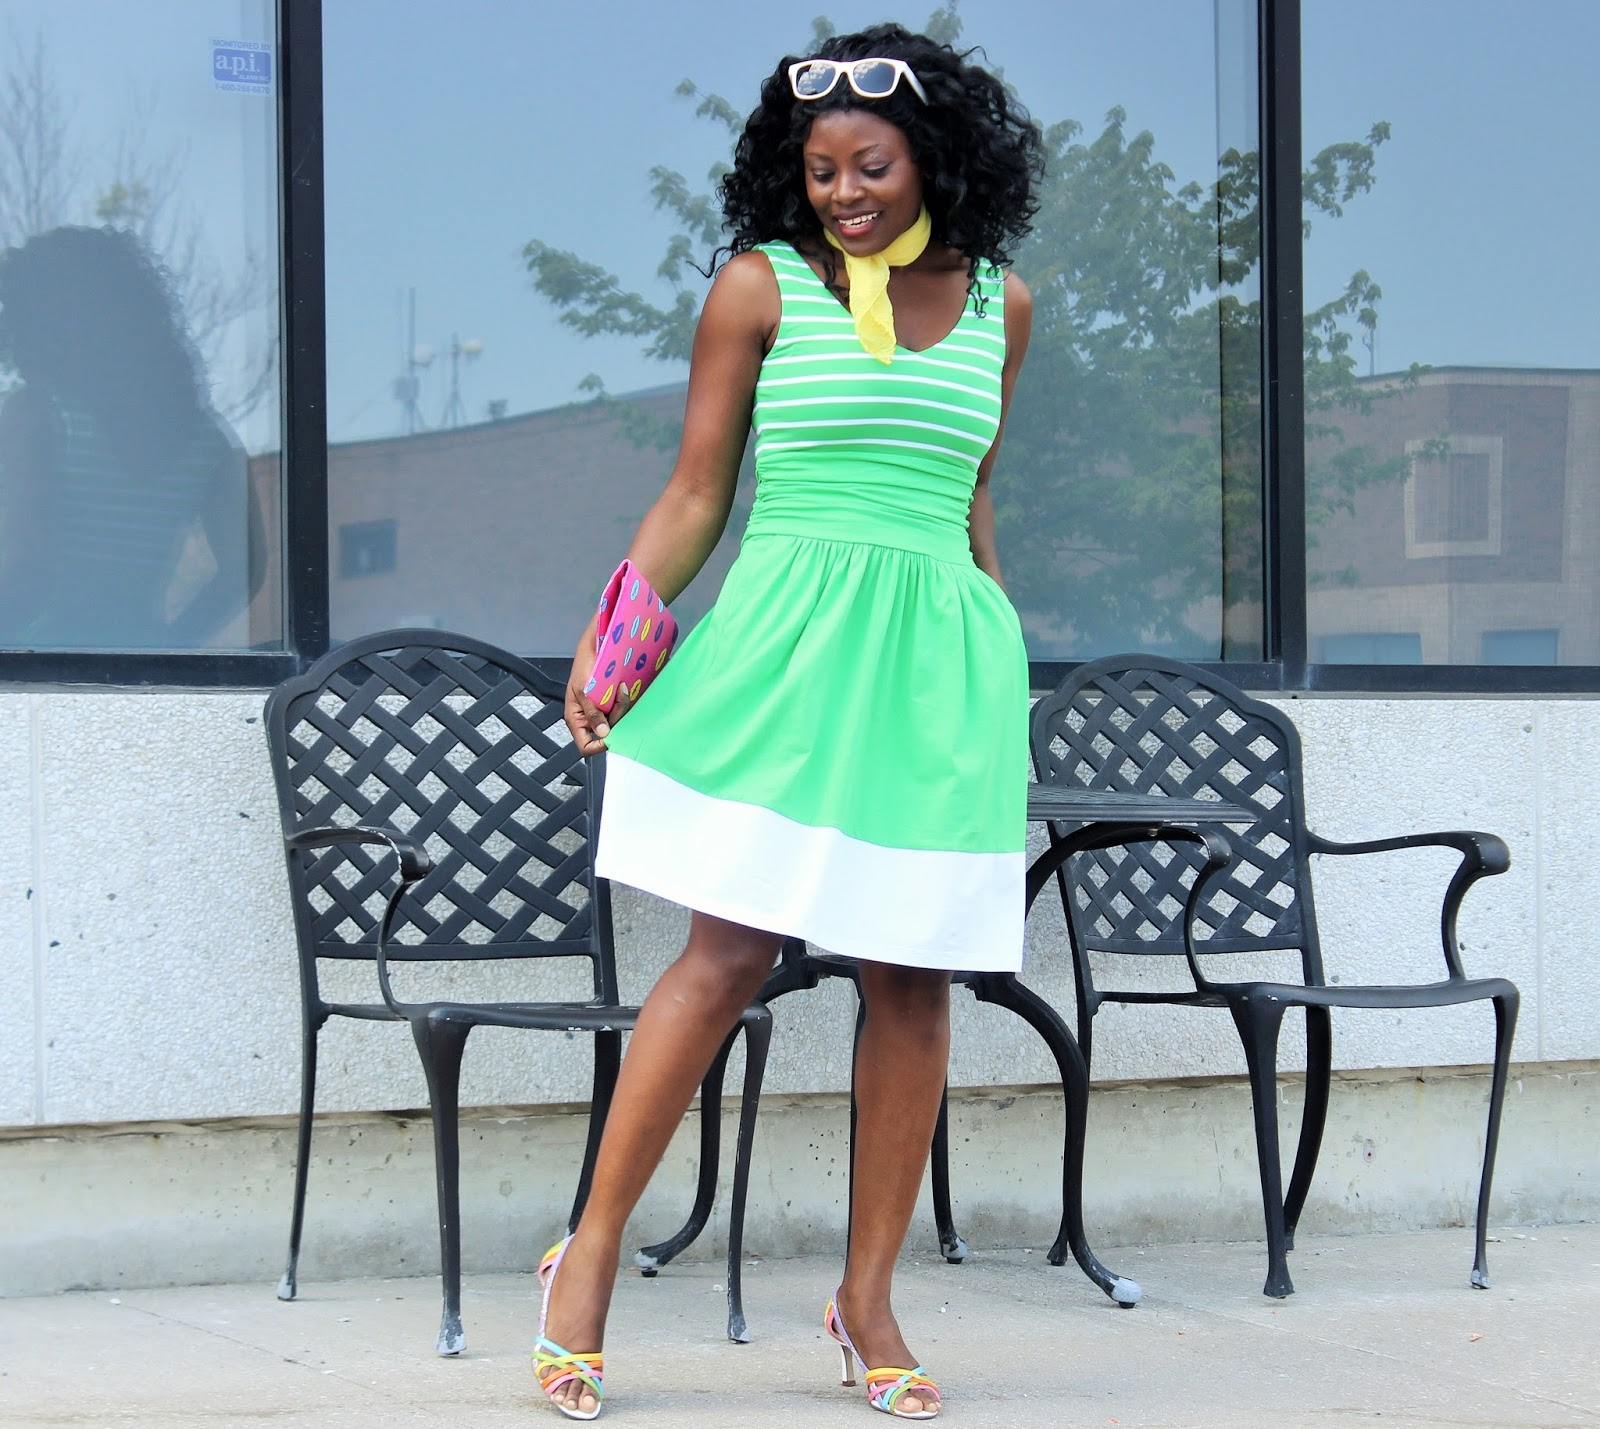 Striped Moxie Dress in Vibrant Green and White by Synergy Organic Clothing